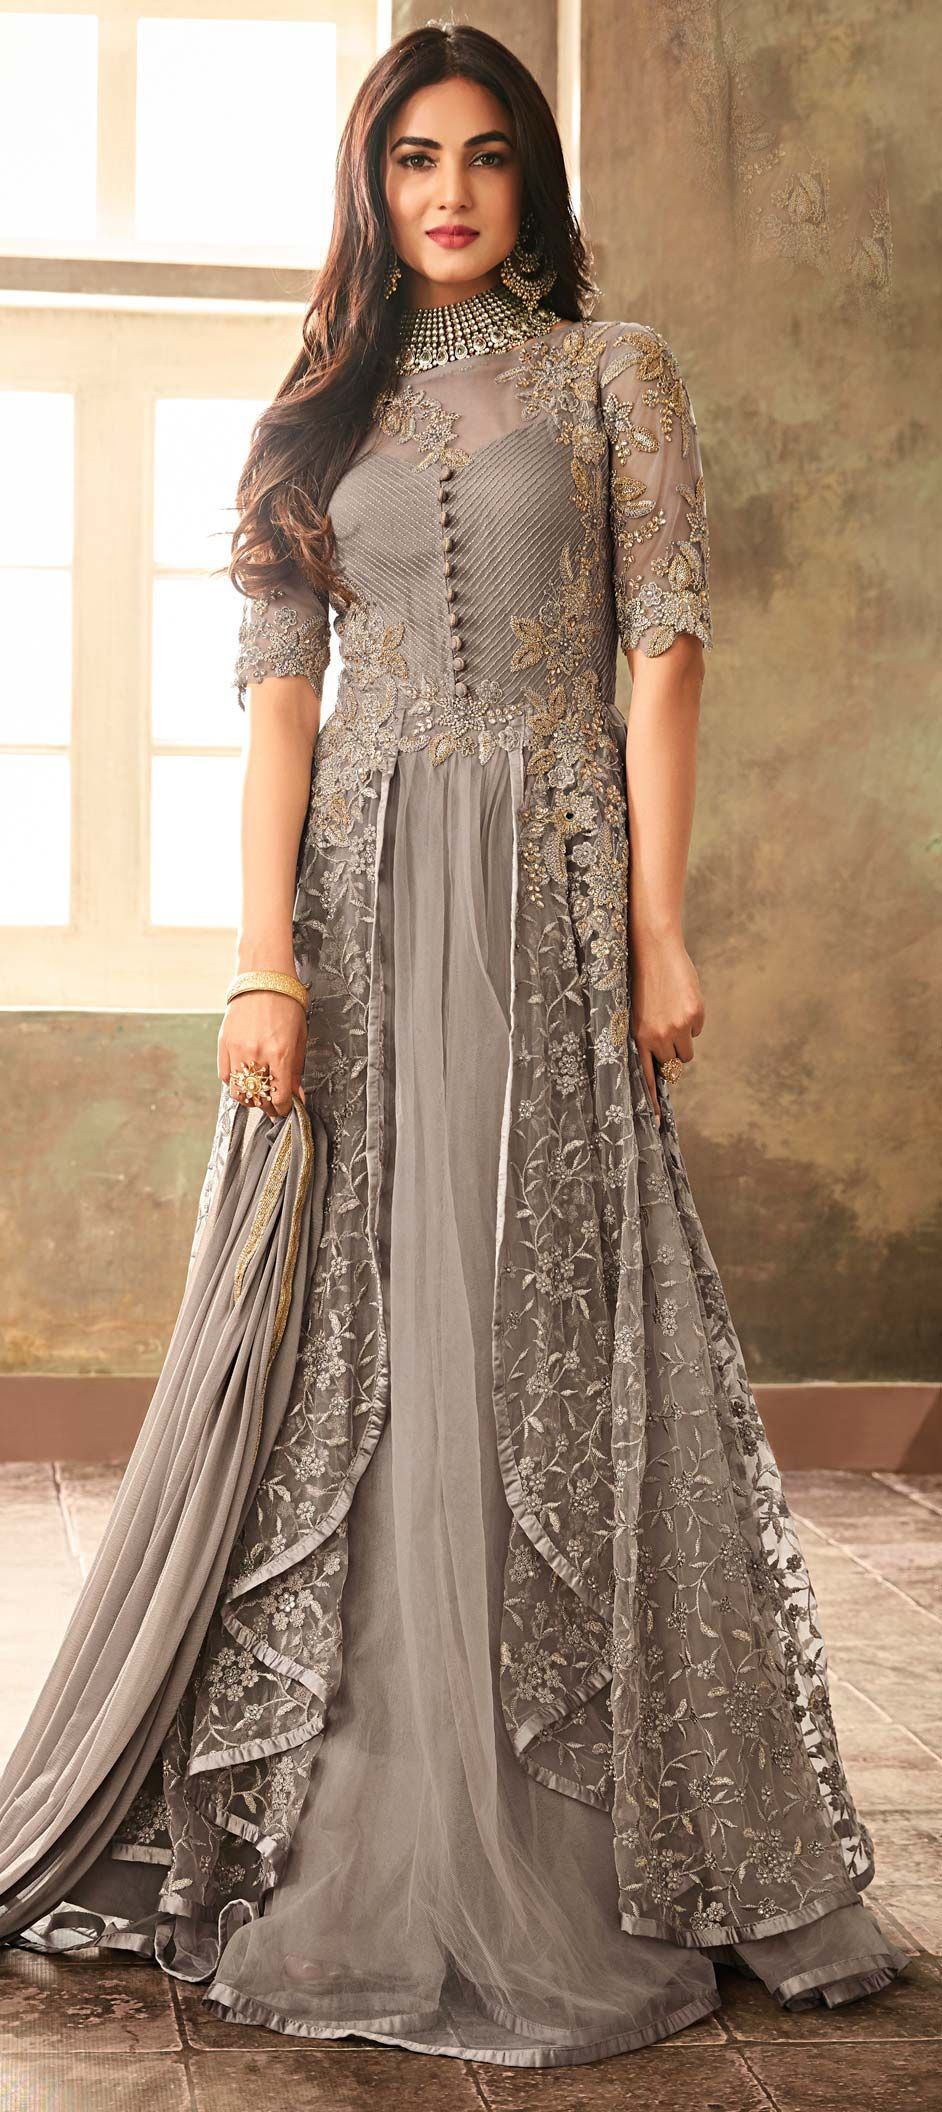 Net Party Wear Salwar Kameez in Black and Grey with Thread